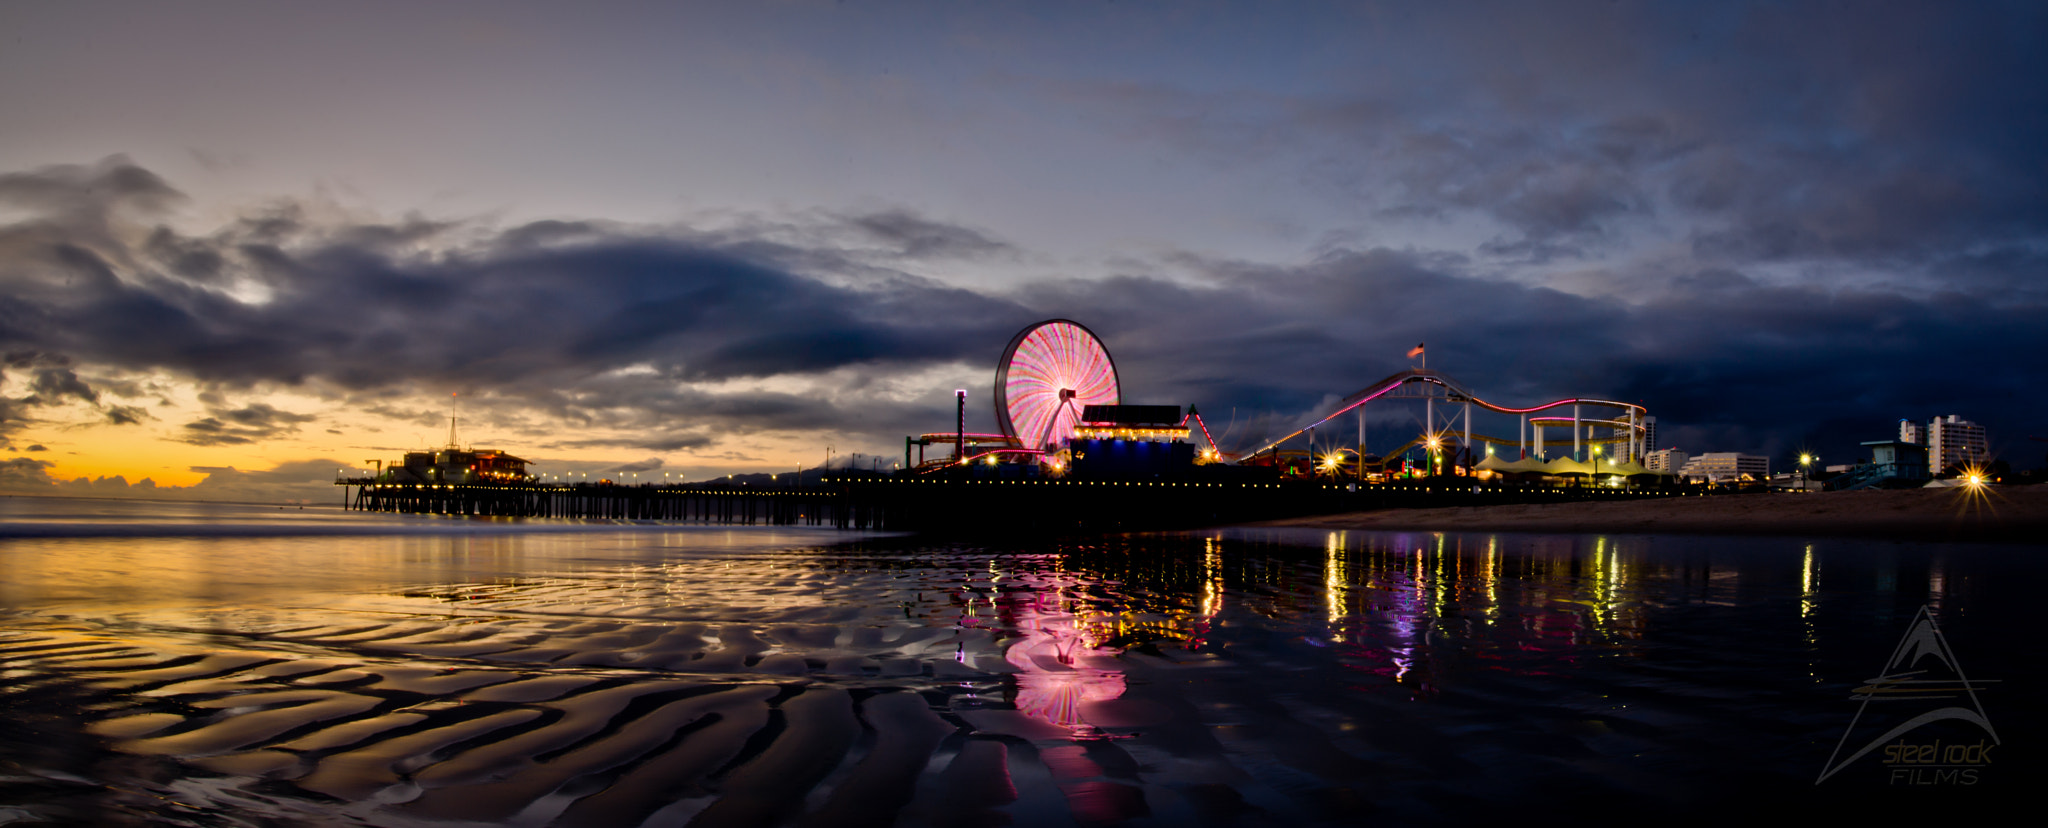 Photograph Pier at Night by Brandon Lied on 500px